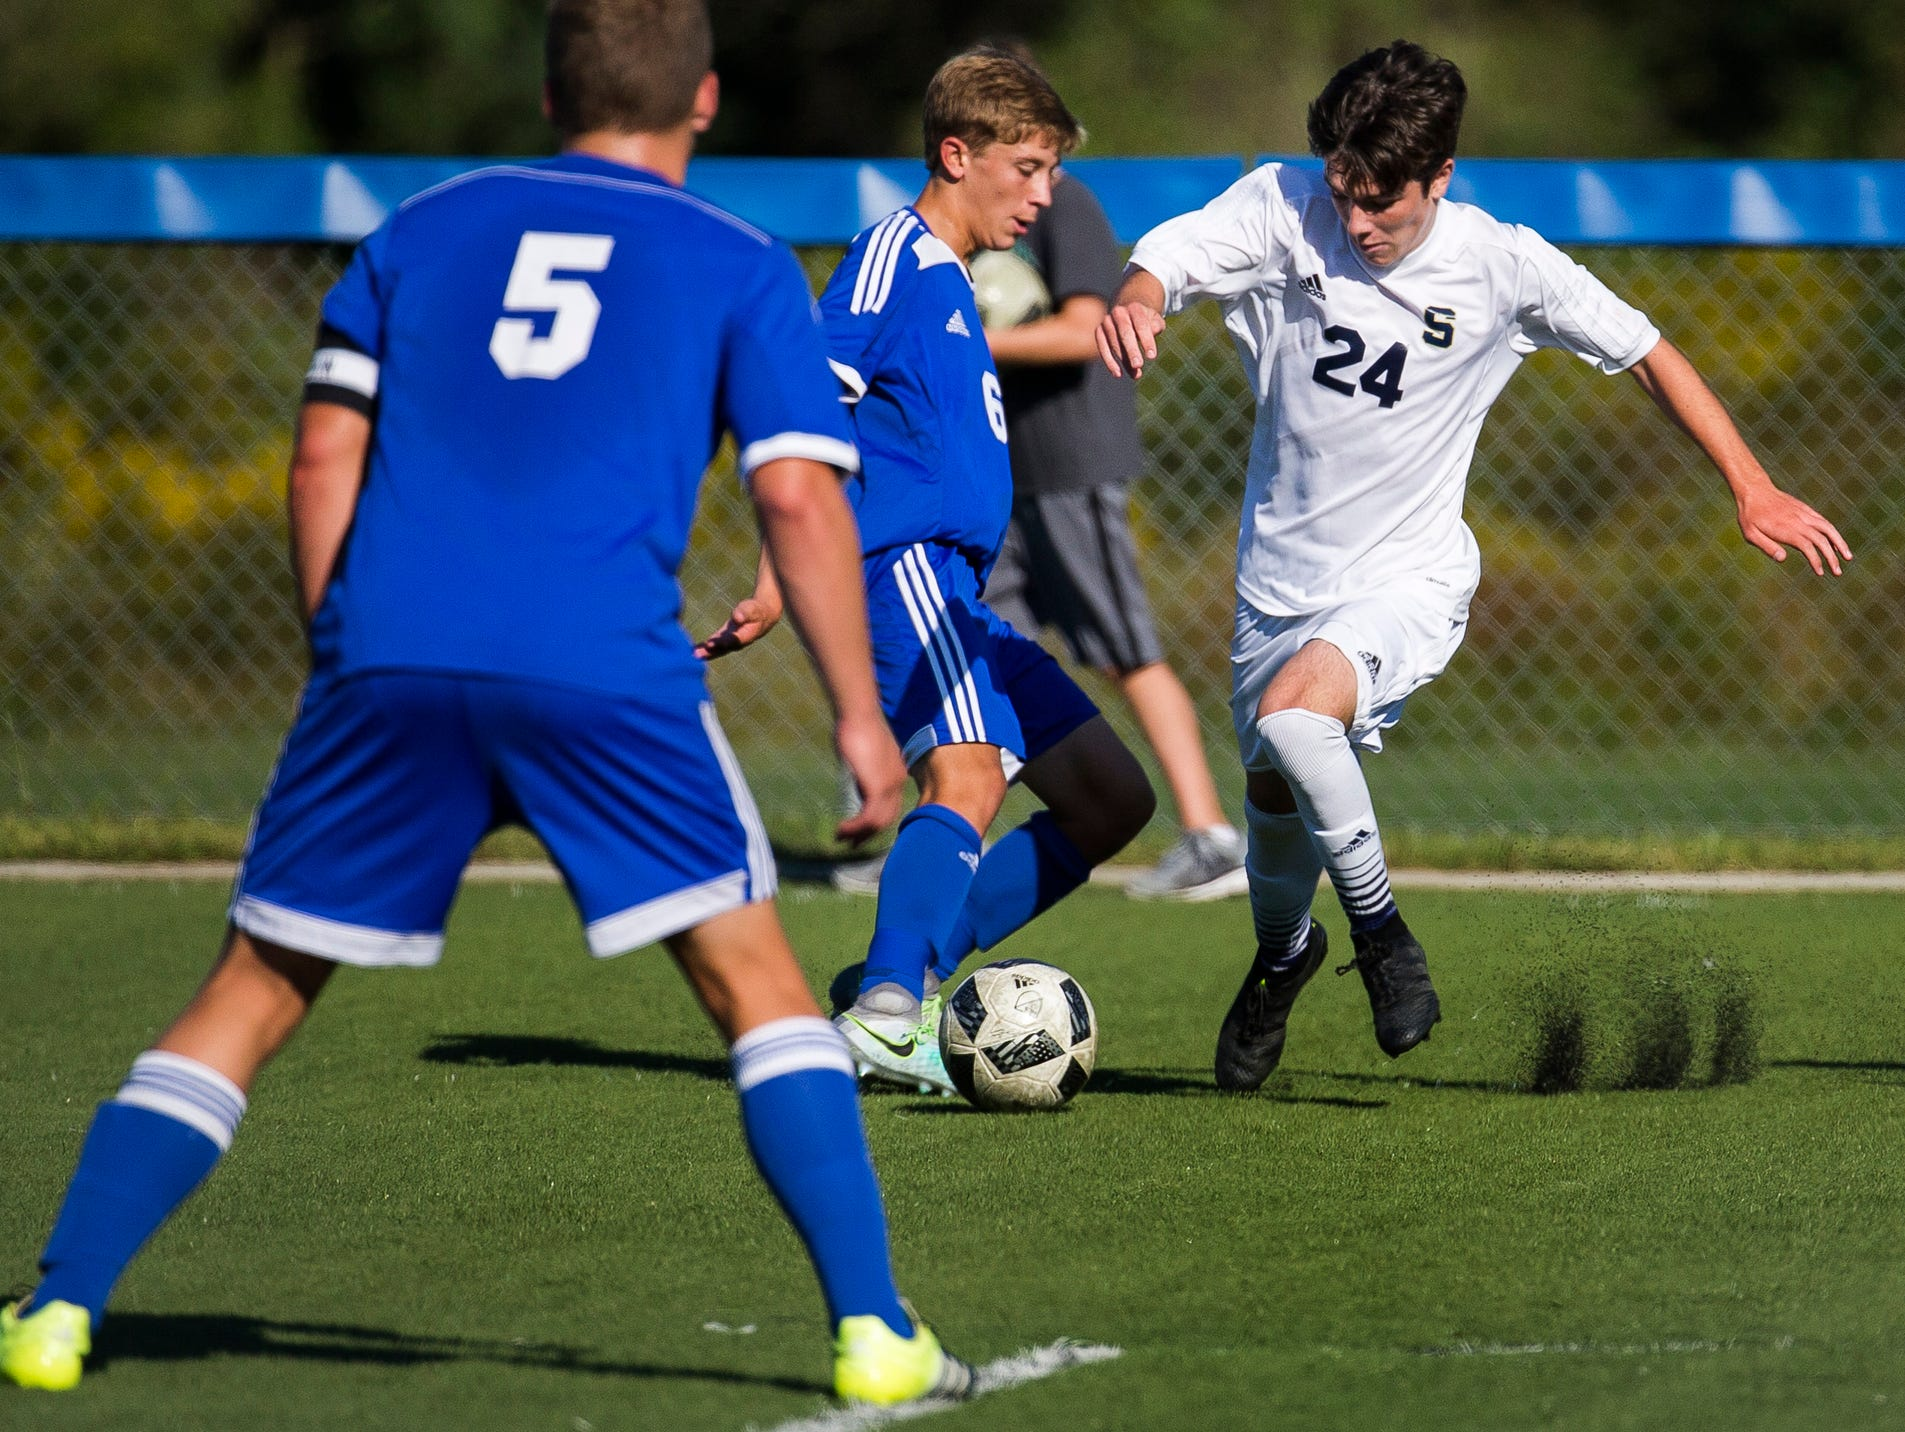 Salesianum's John Leonard (No. 24) tries to work past Wilmington Charter's Anthony Barbieri (No. 6) in the first half of Salesianum's 1-0 win over Wilmington Charter at the Hockessin Soccer Club in Hockessin on Thursday afternoon.